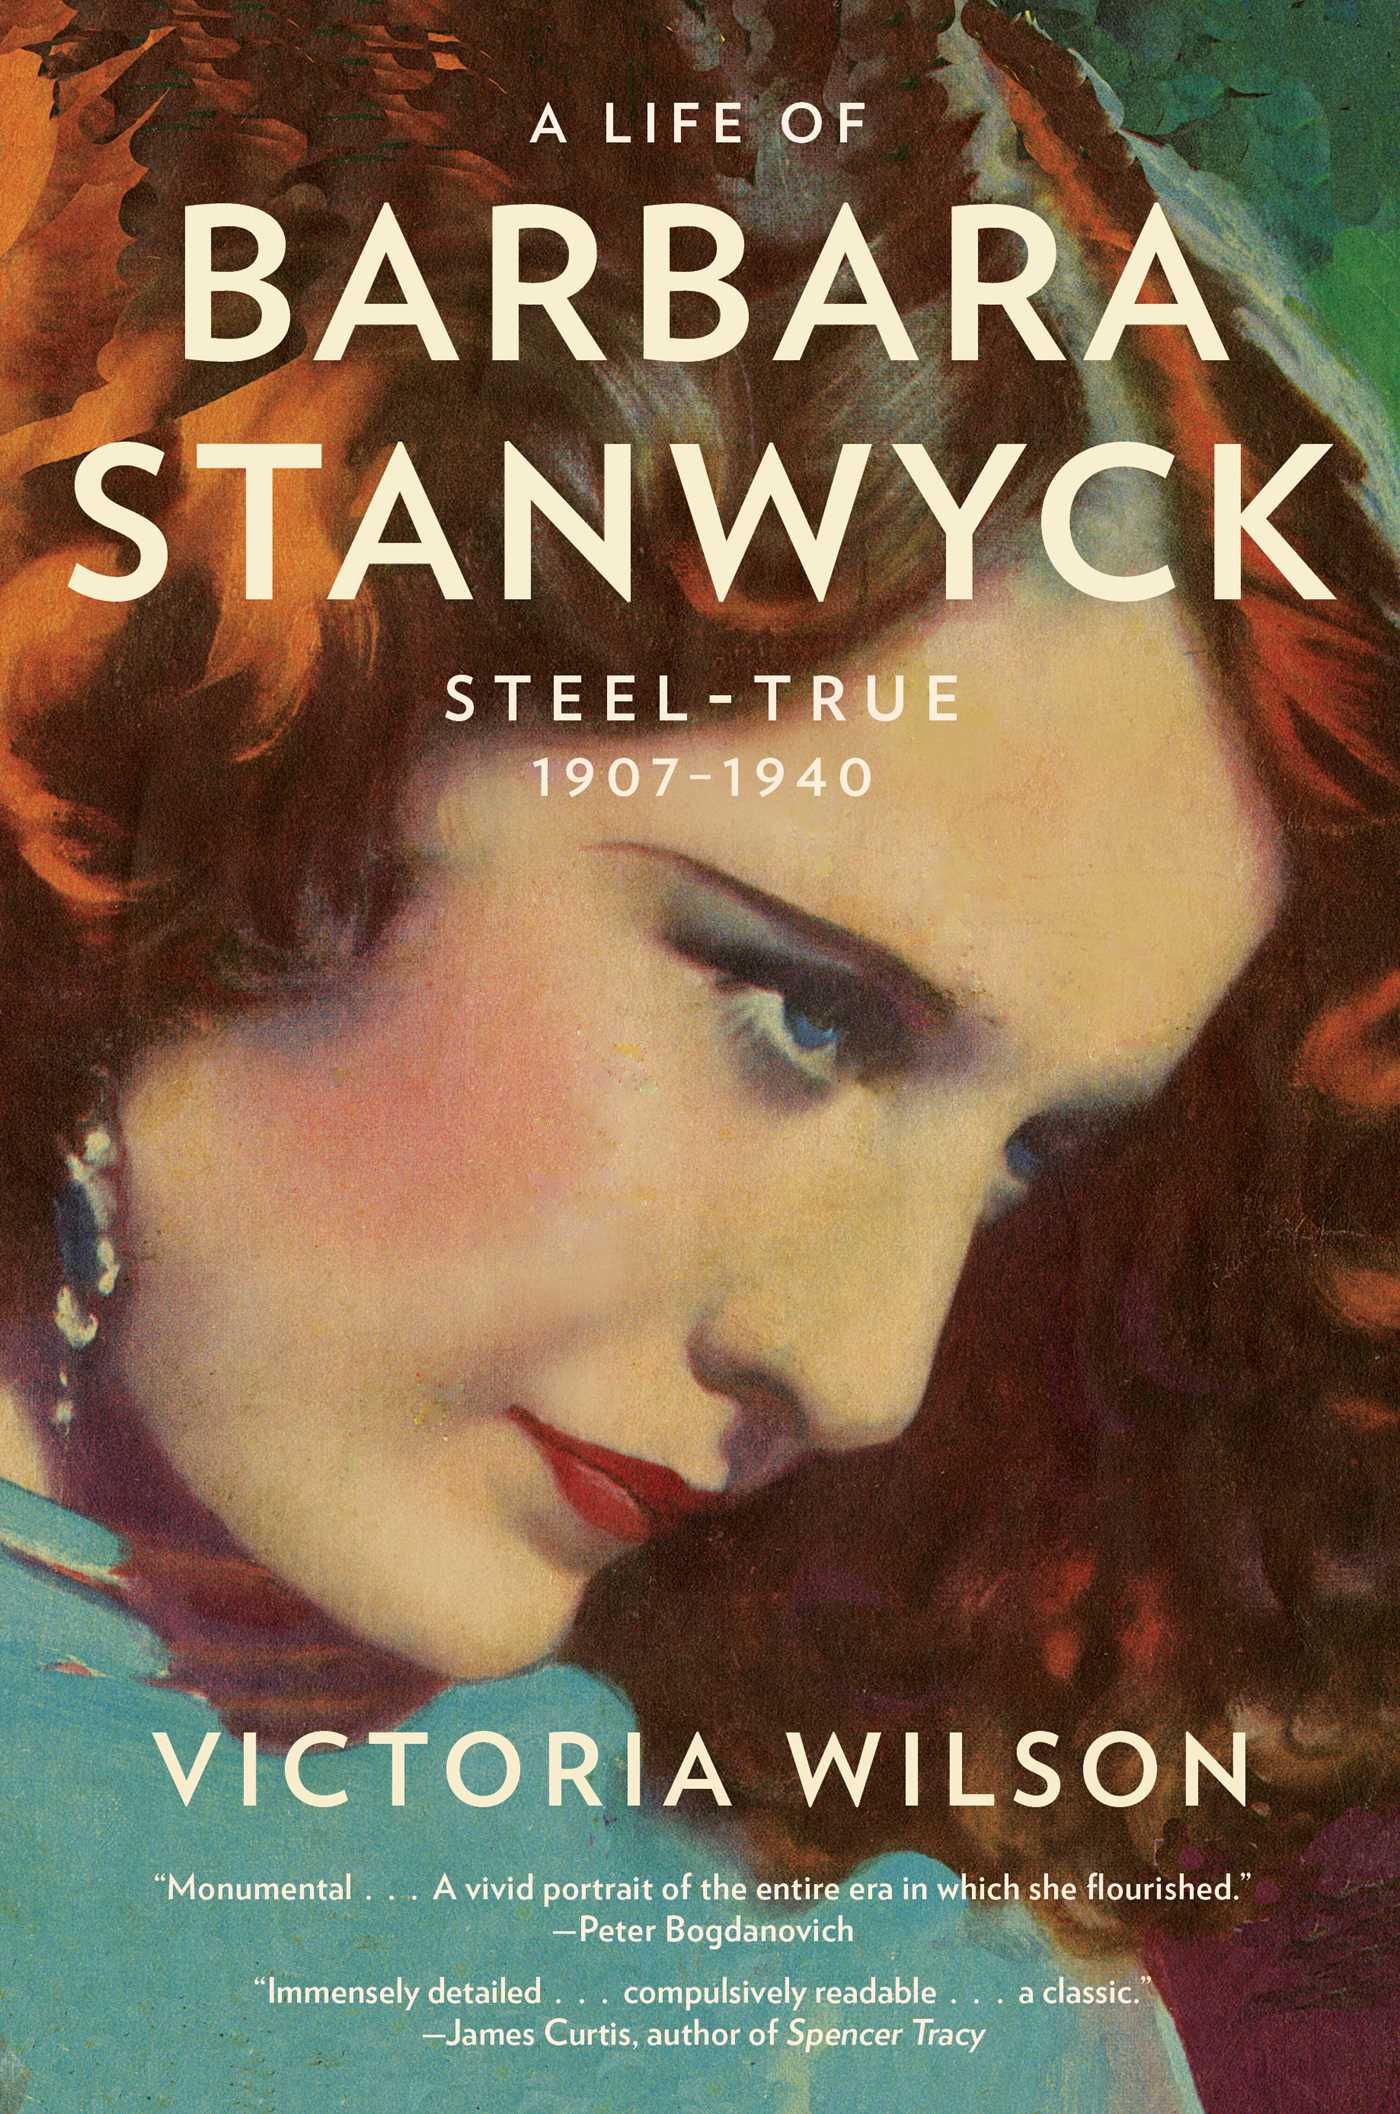 A-life-of-barbara-stanwyck-9781439199985_hr